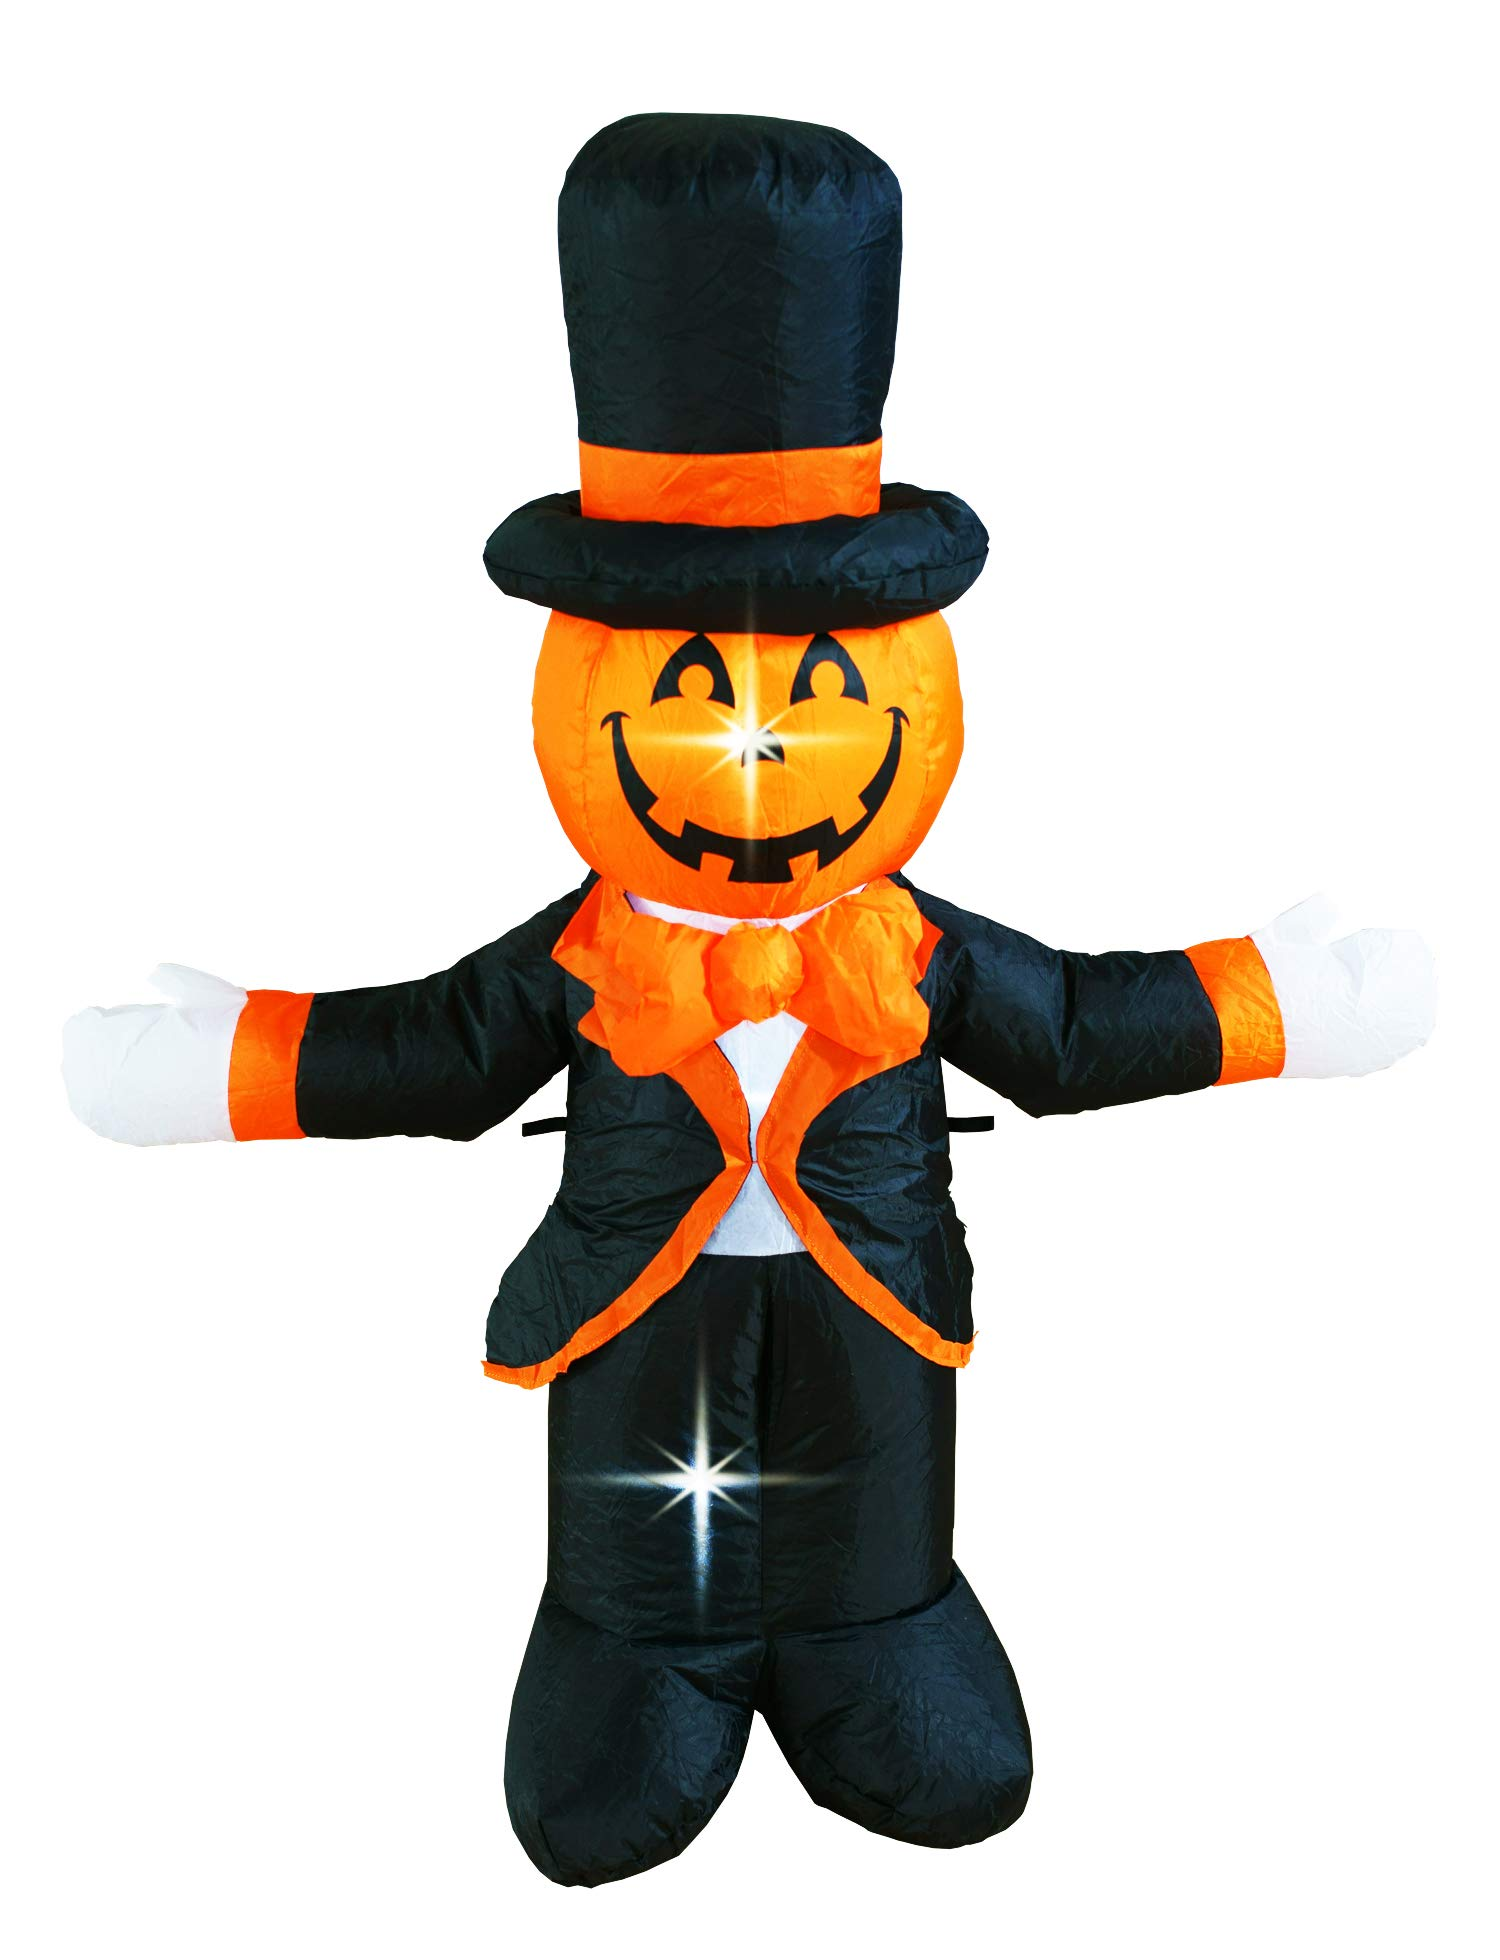 BIGJOYS 4 Ft Halloween Decorations Inflatable Pumpkin Gentlemen Decoration Portable Lighted Lanterns for Home Yard Garden Lawn Indoor and Outdoor Party